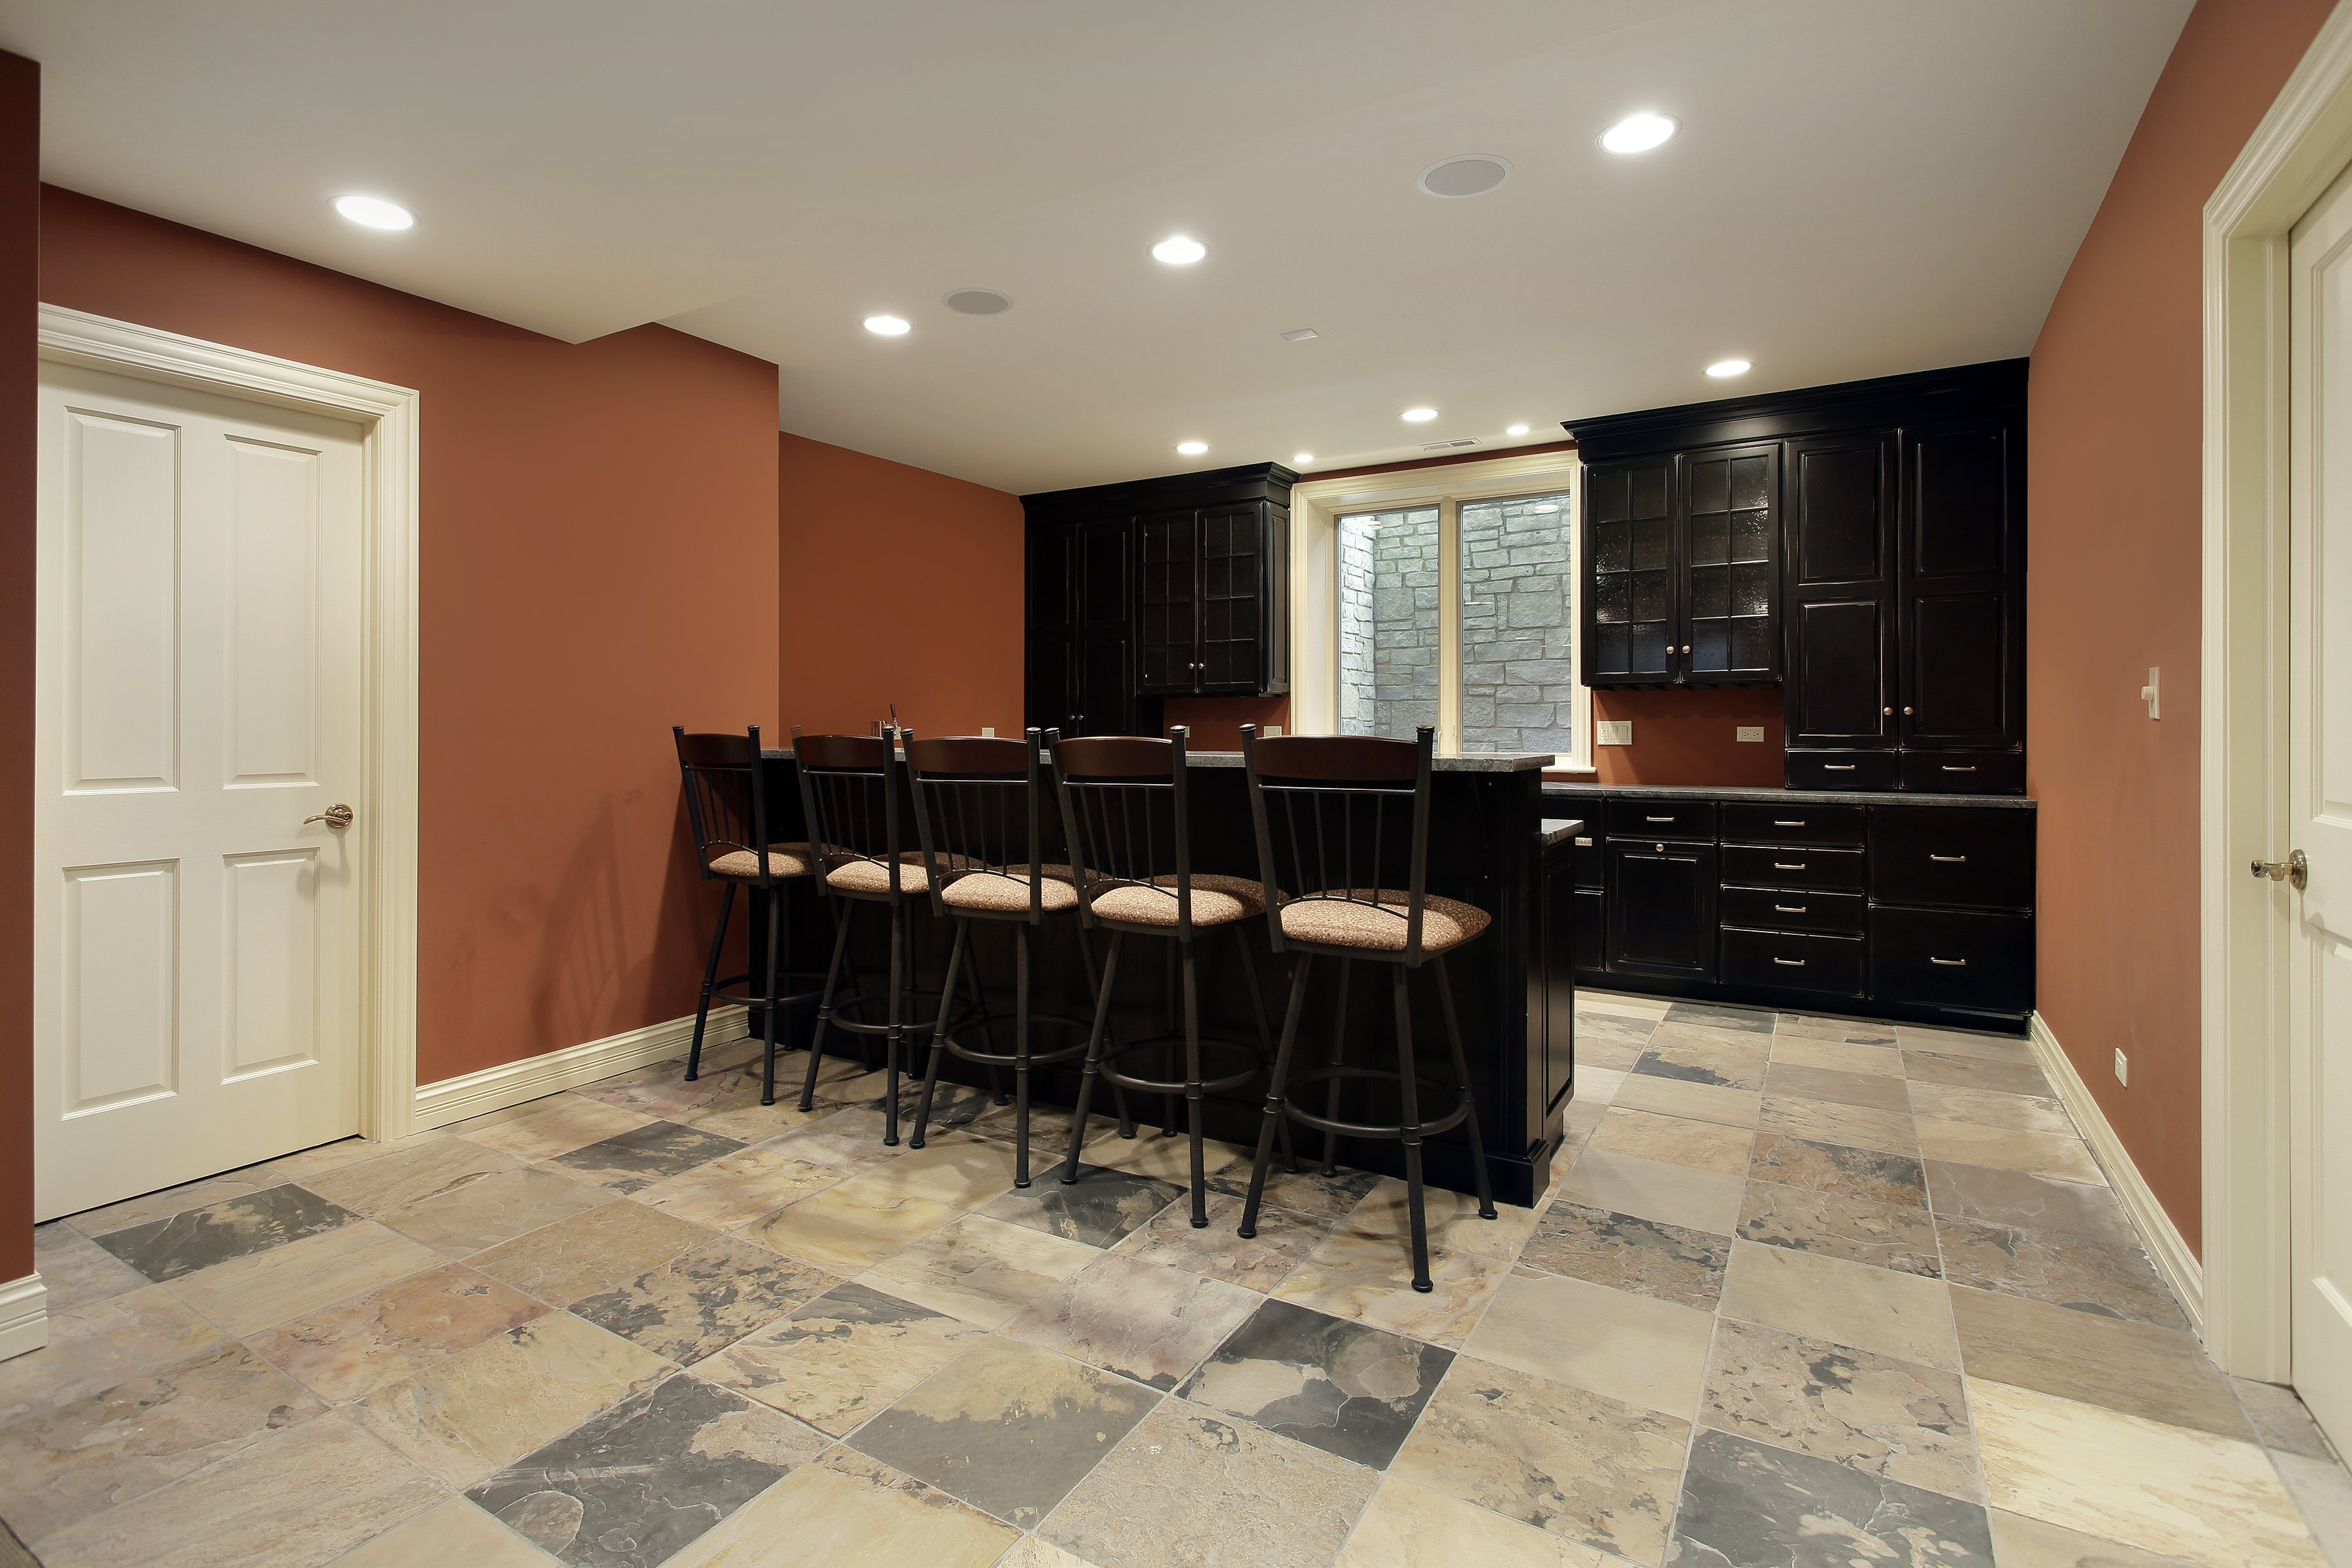 Basement Remodel with slate like ceramic tile with beautiful espresso cabinetry and bar with seating.